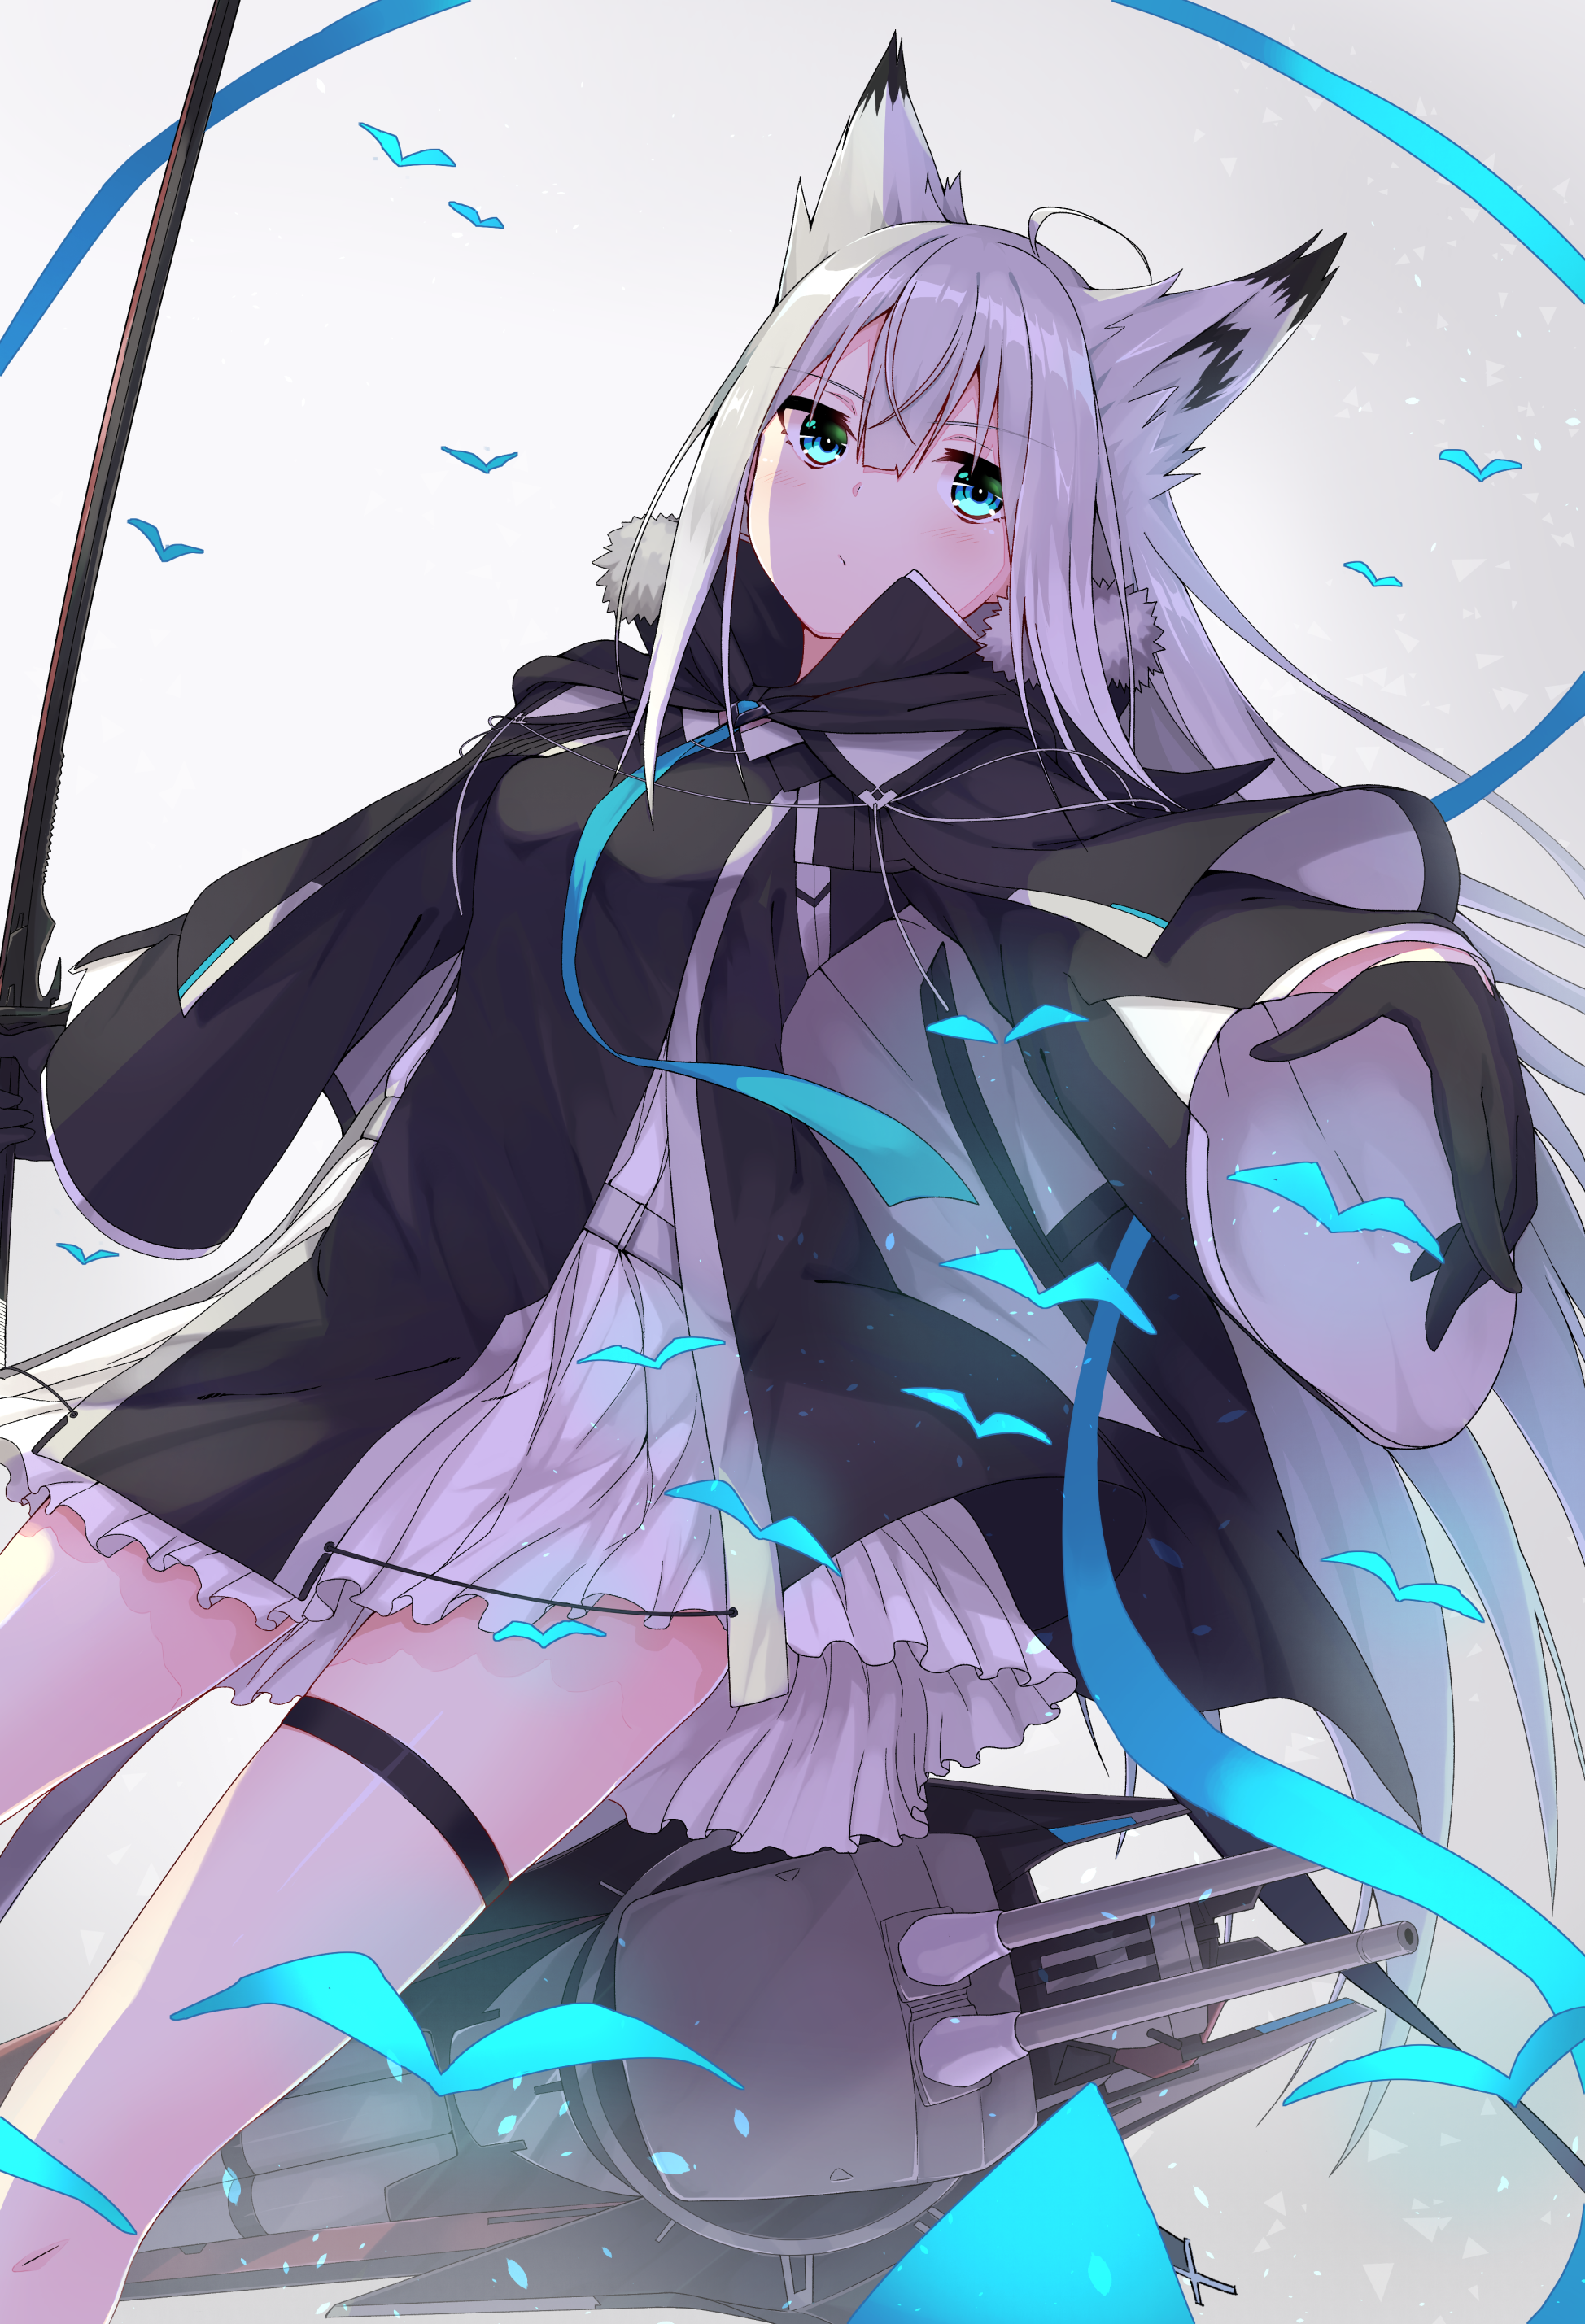 San Diego Iphone Wallpaper Bilan Hangxian Azur Lane Zerochan Anime Image Board